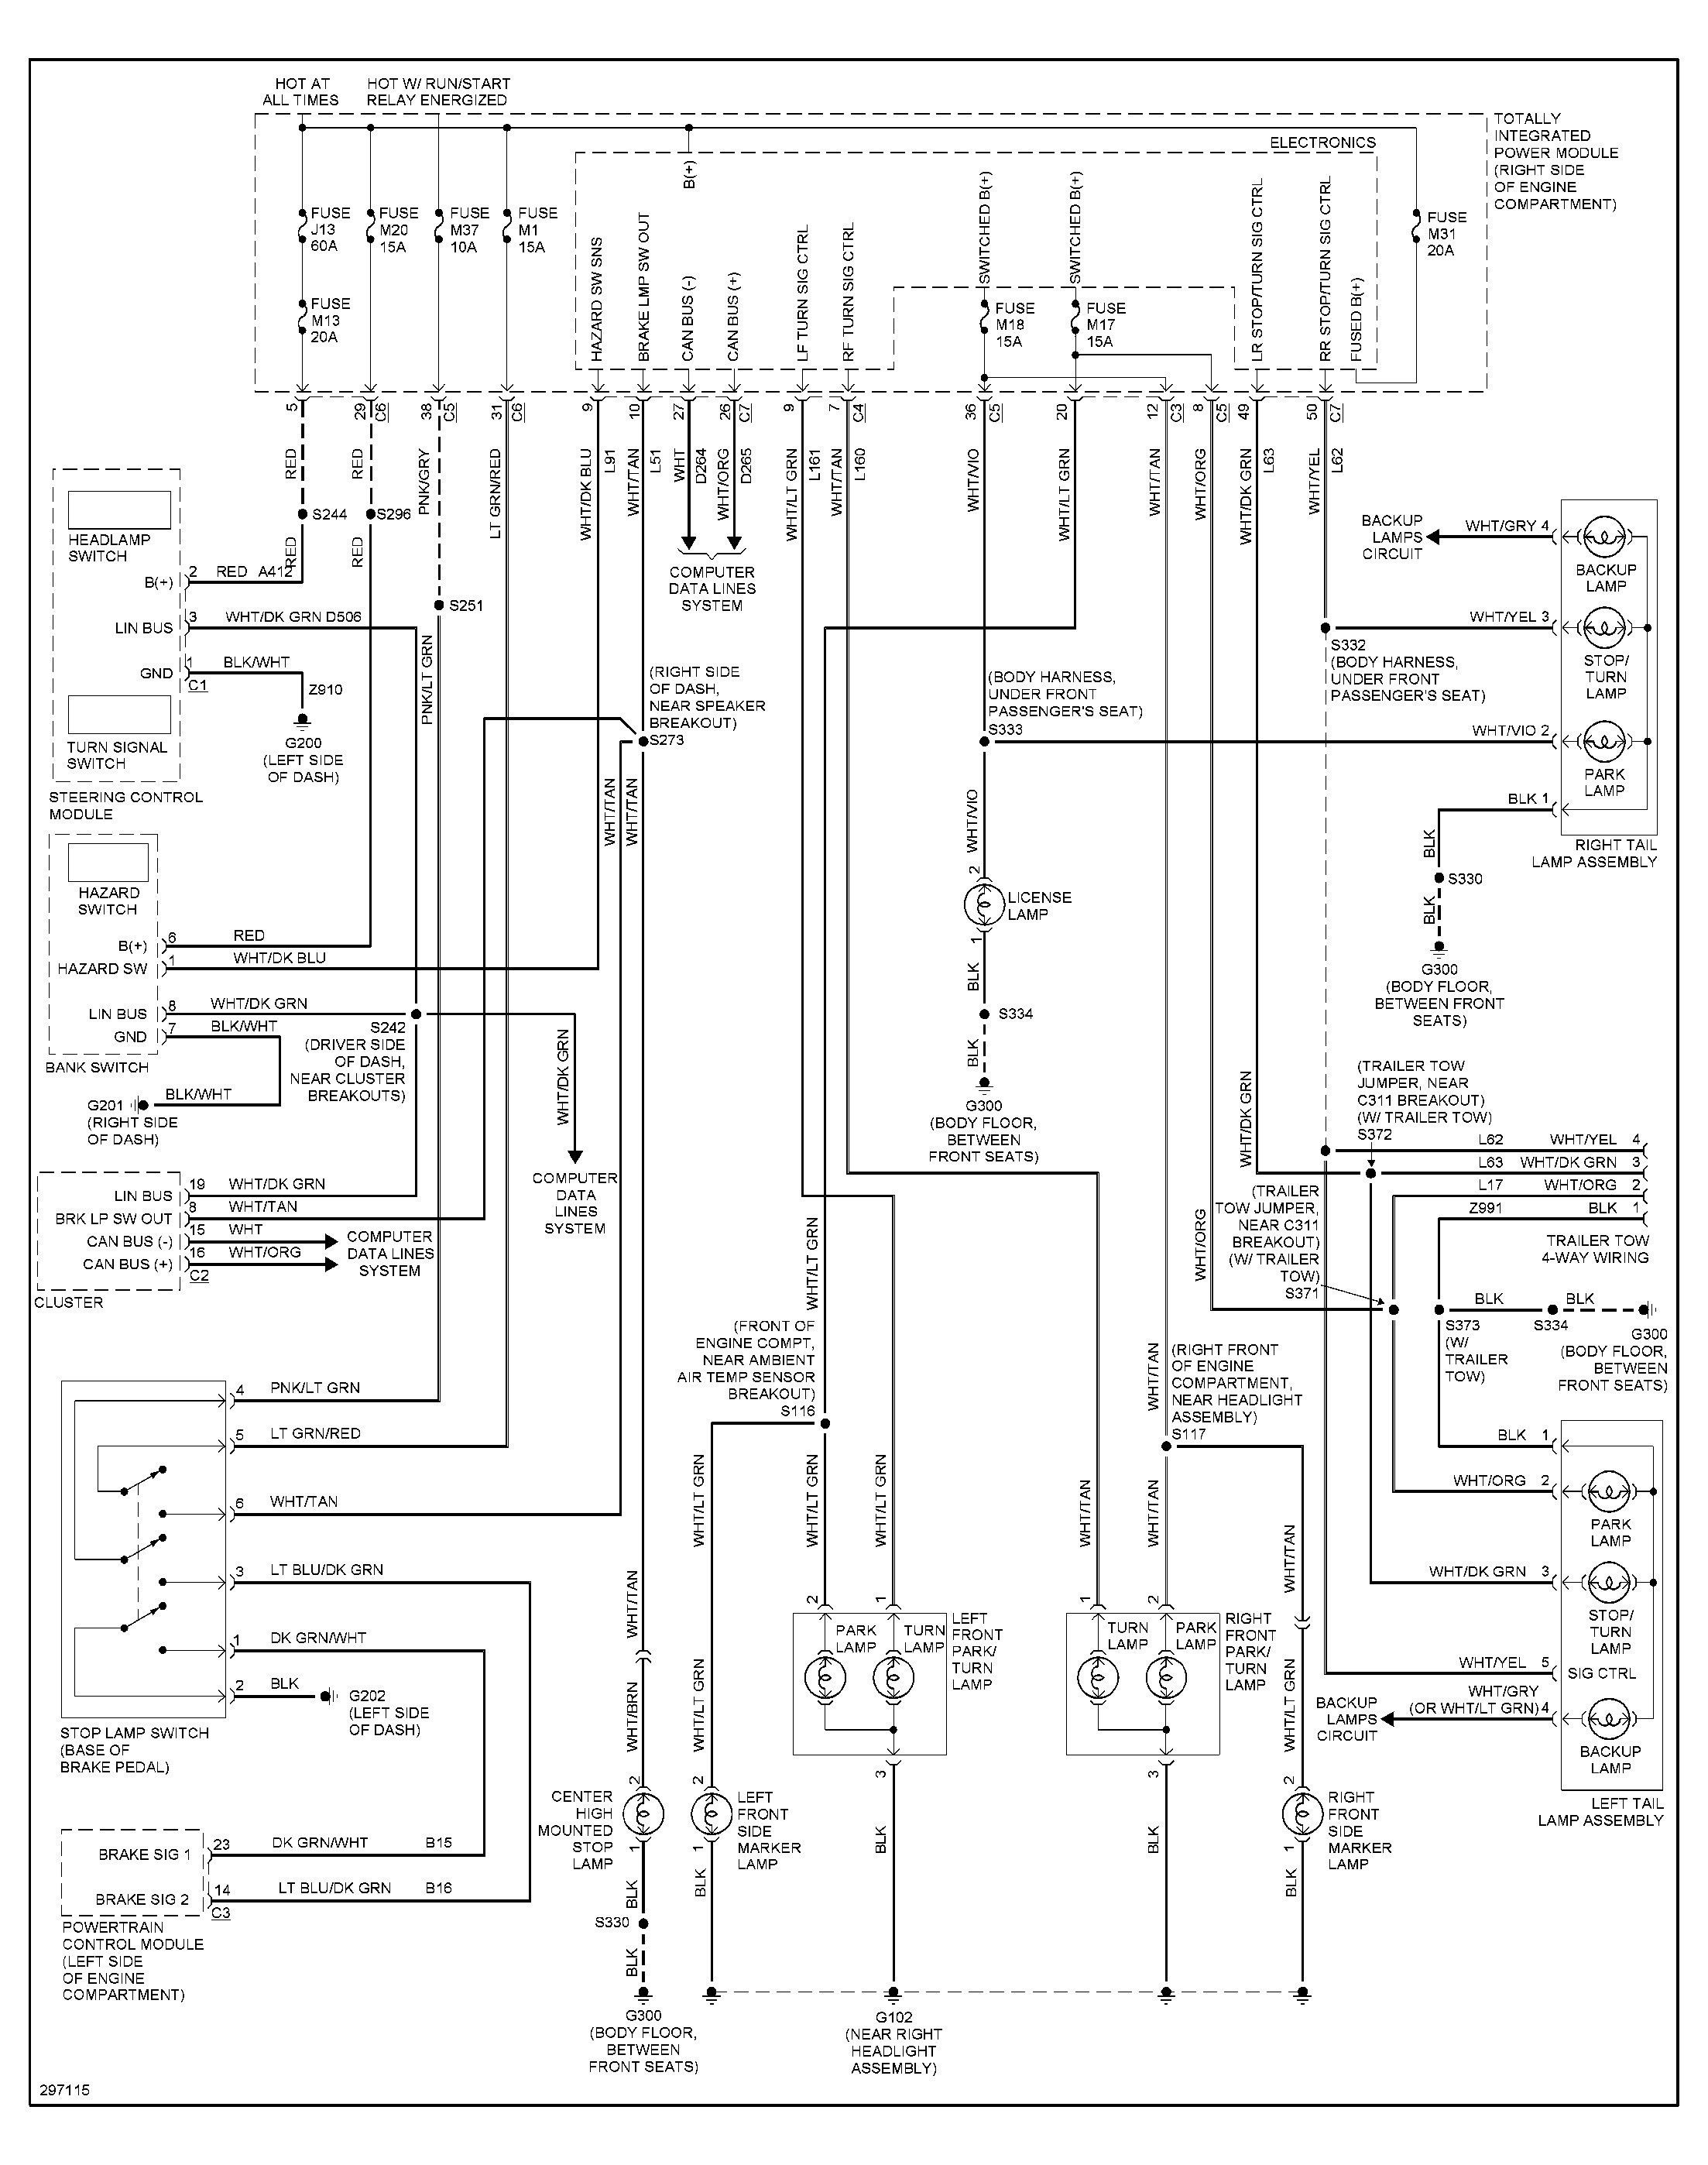 diagram] 1994 ford lightning wiring diagram full version hd quality wiring  diagram - zerofireengine.logeco.fr  logeco.fr